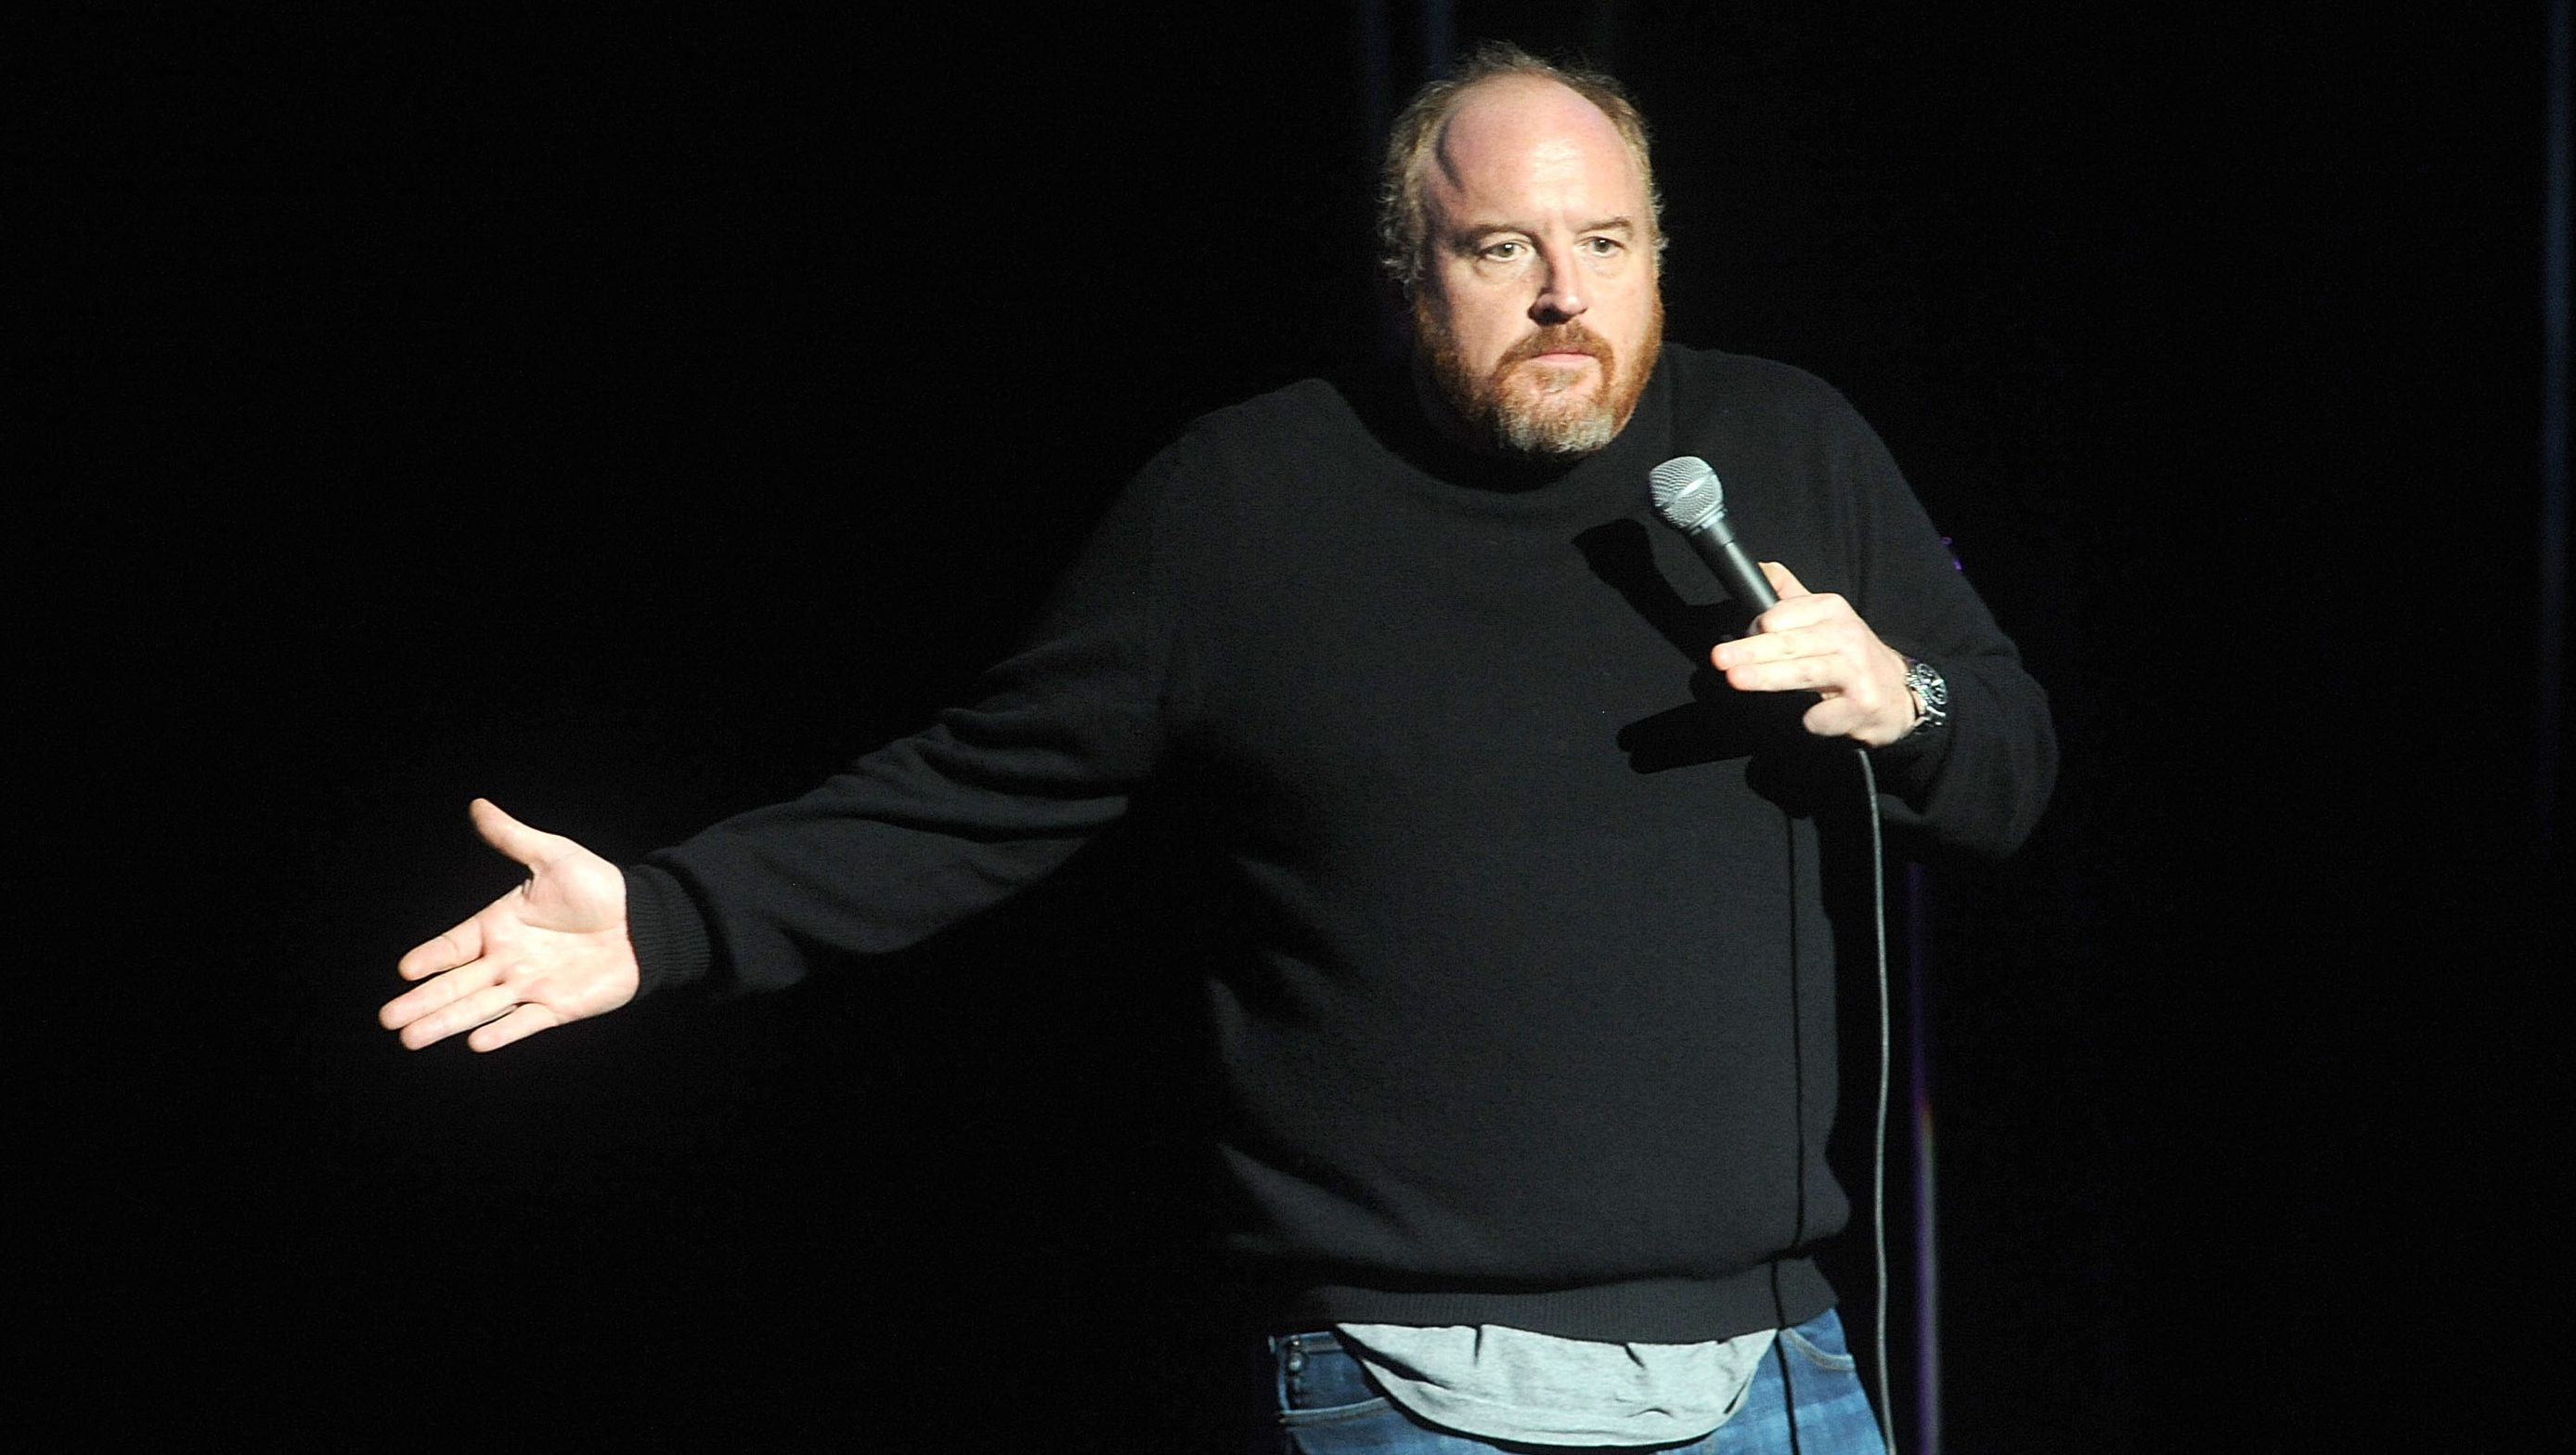 Louis C.K. performs at the 8th Annual Stand Up For Heroes, presented by New York Comedy Festival and The Bob Woodruff Foundation, at the Theater at Madison Square Garden on Wednesday, Nov. 5, 2014, in New York. (Photo by Brad Barket/Invision/AP)